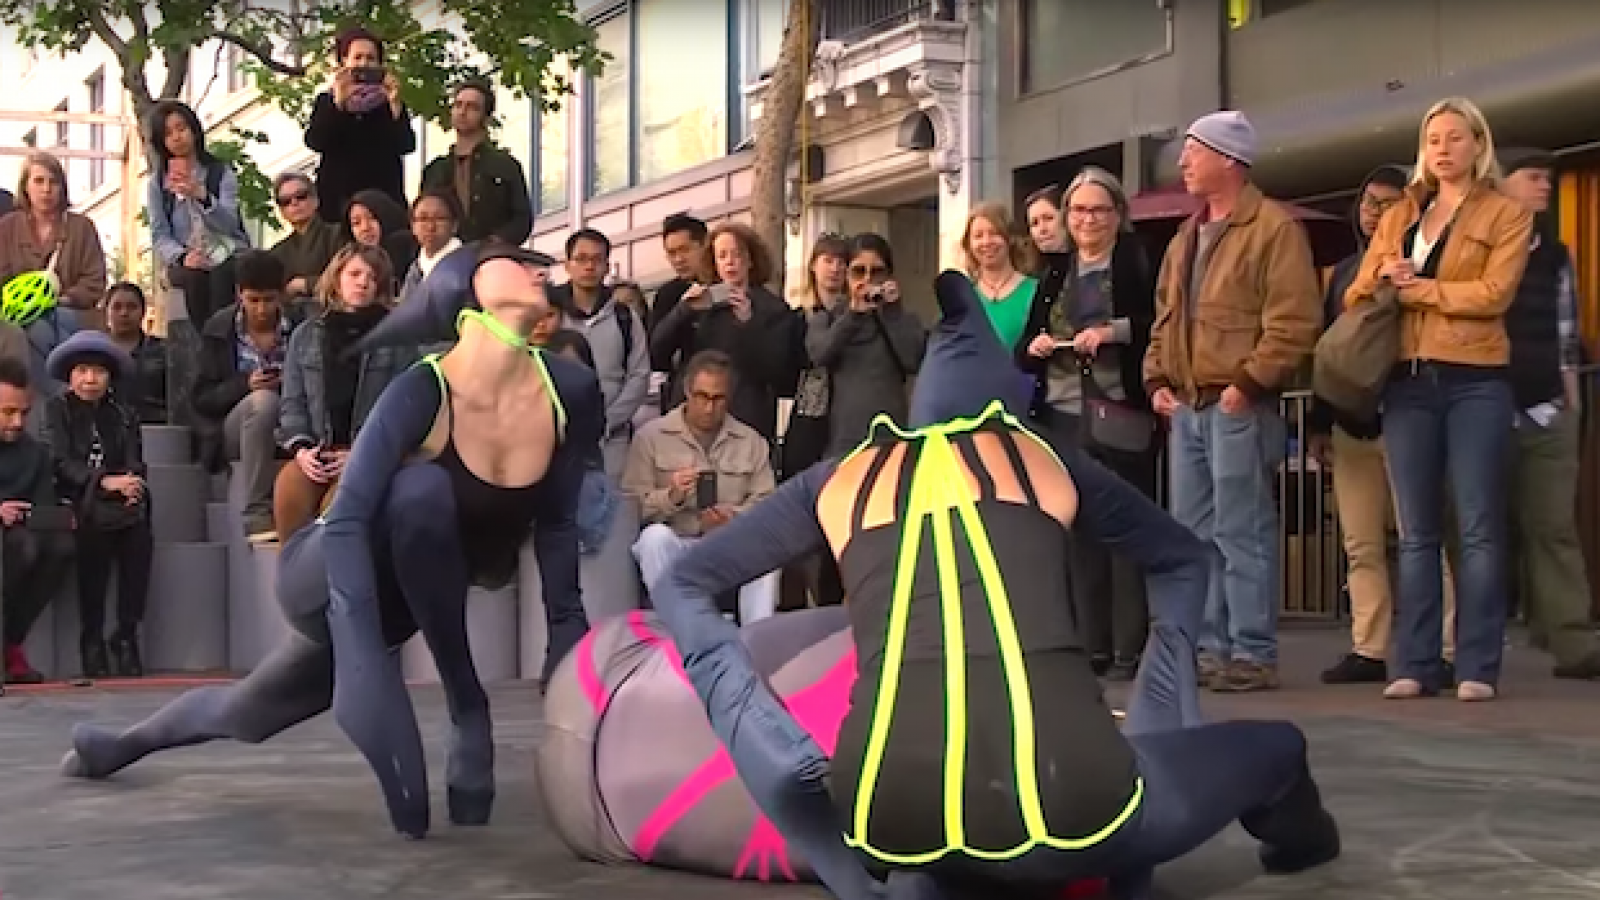 Dancers dressed as bugs dance on a city sidewalk for a crowd.